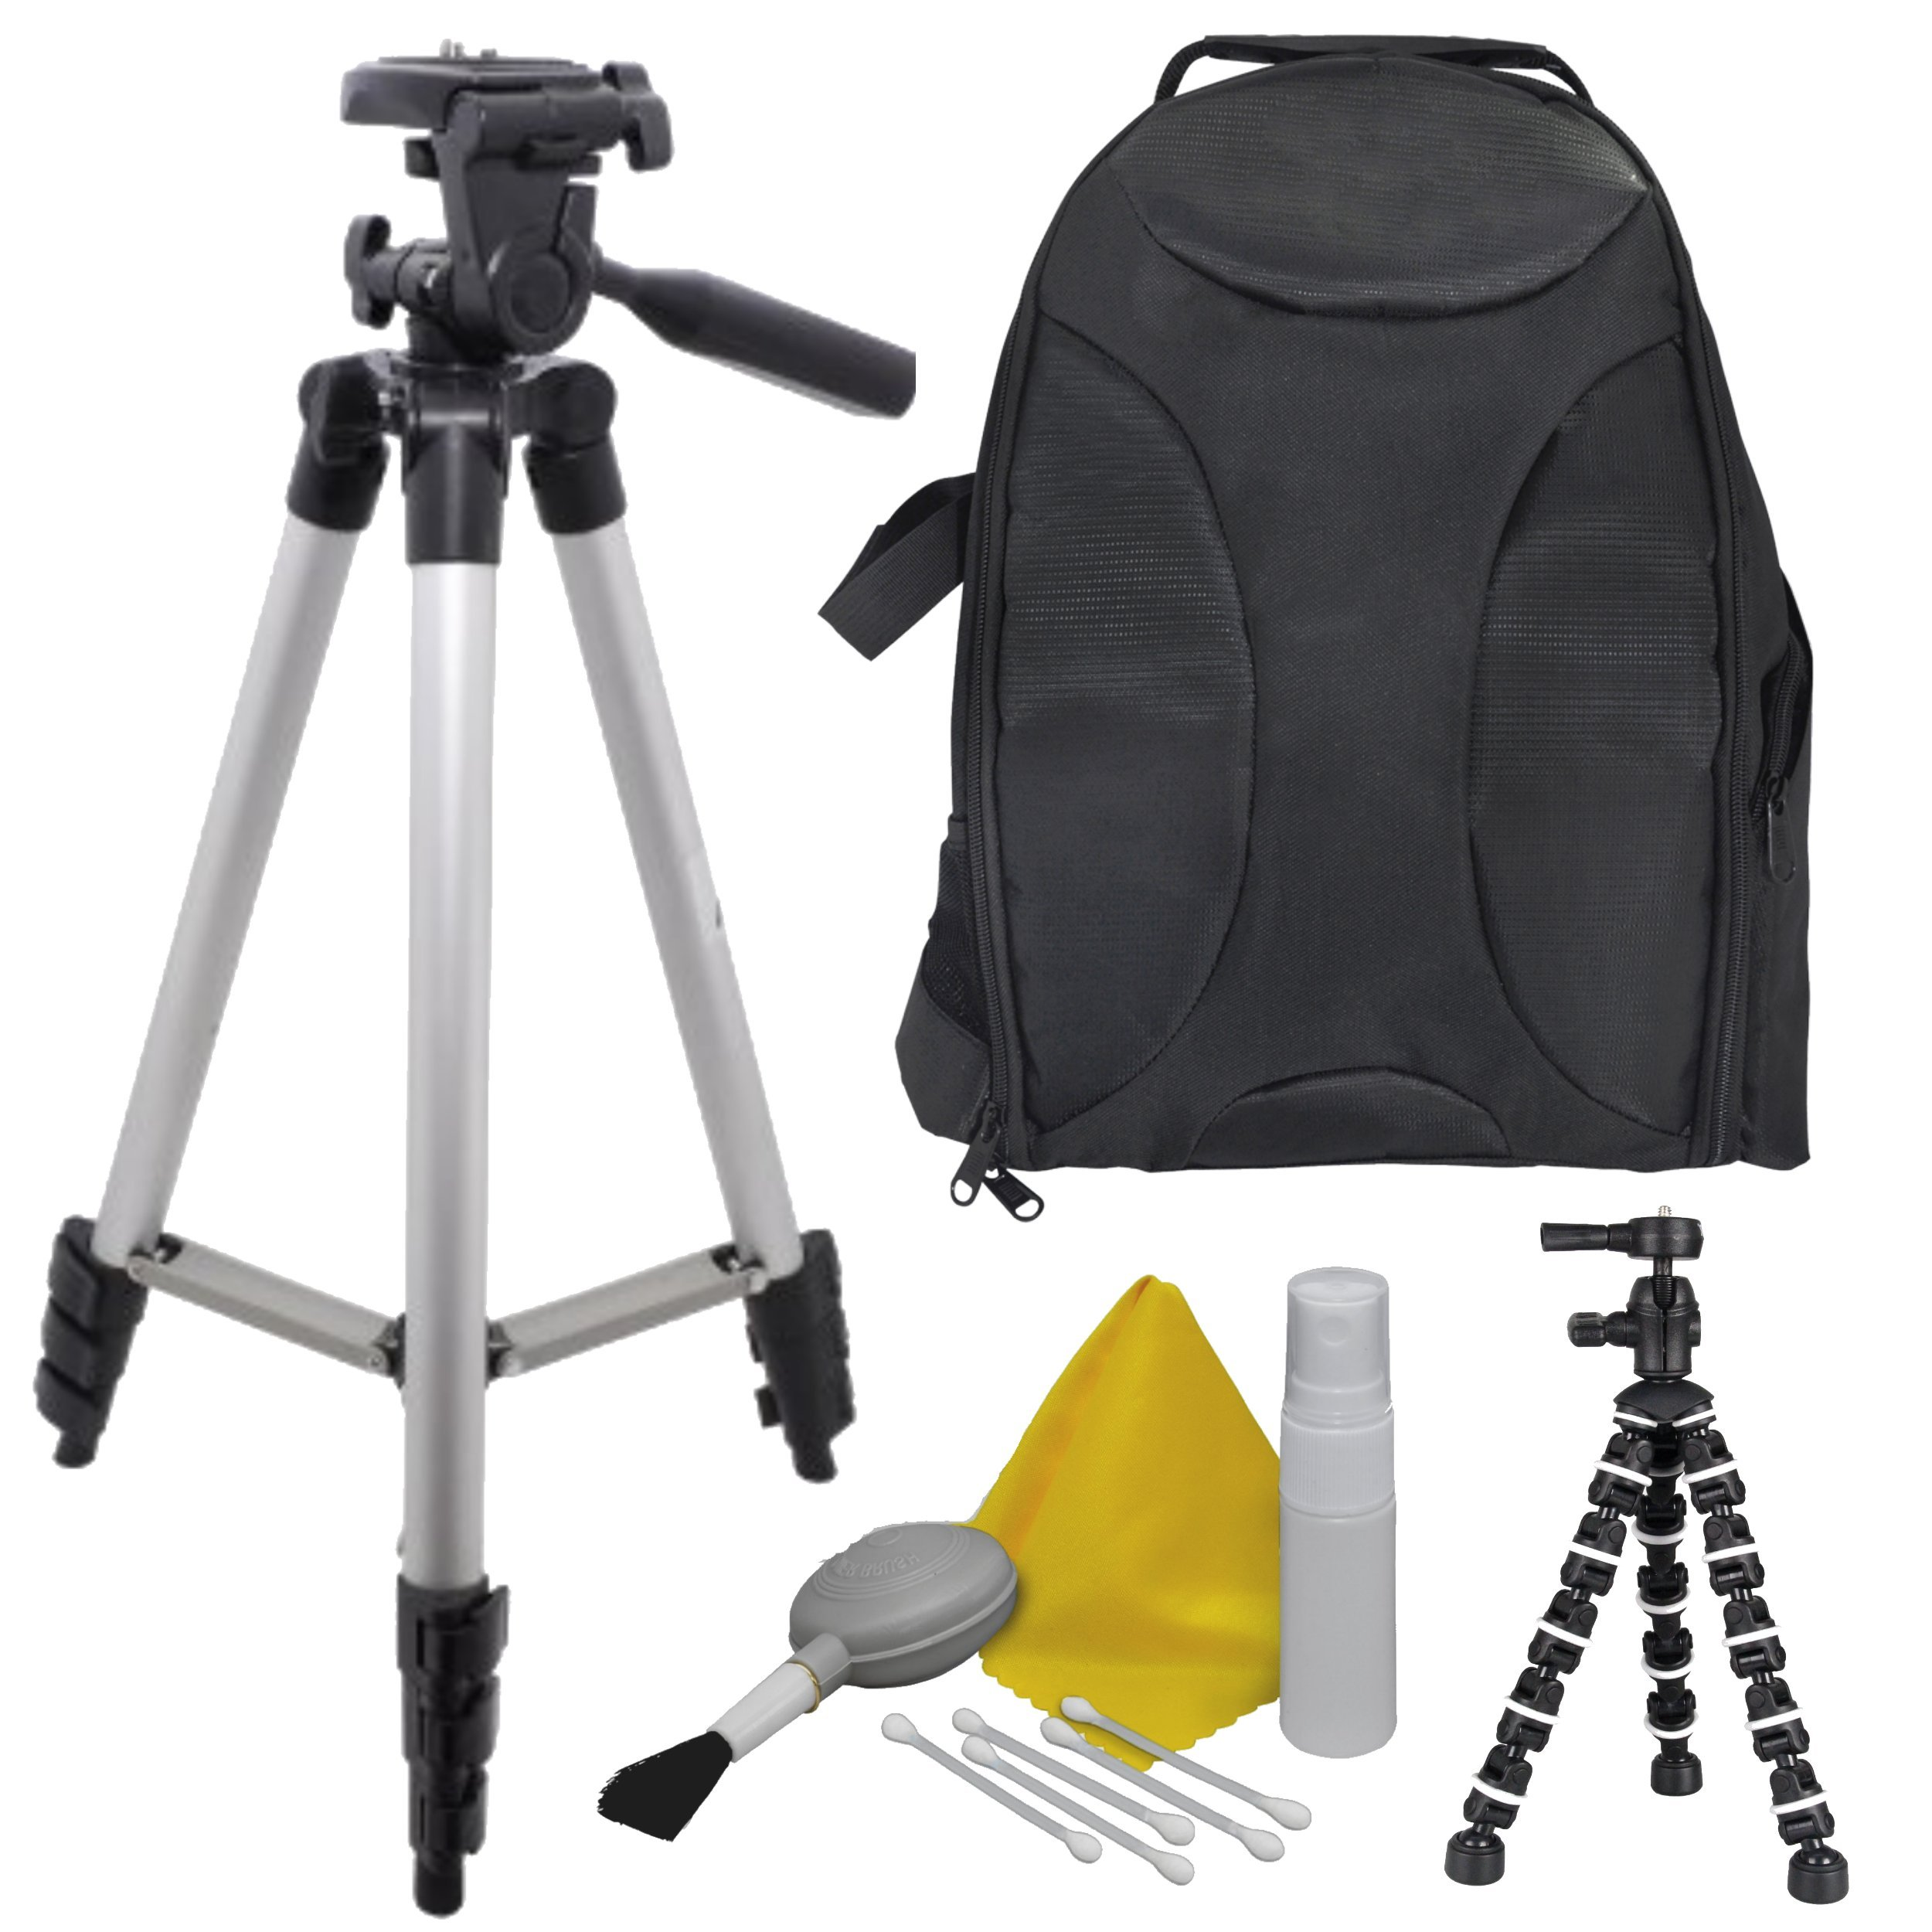 EXTREME FUN: Camera Accessory Kit for Canon PowerShot SX500 IS Bundle Includes: Back Pack - 50'' Elite Tripod - Camera Cleaning & Maintenance Equipment - 8'' BendiPod, Shop Smart!